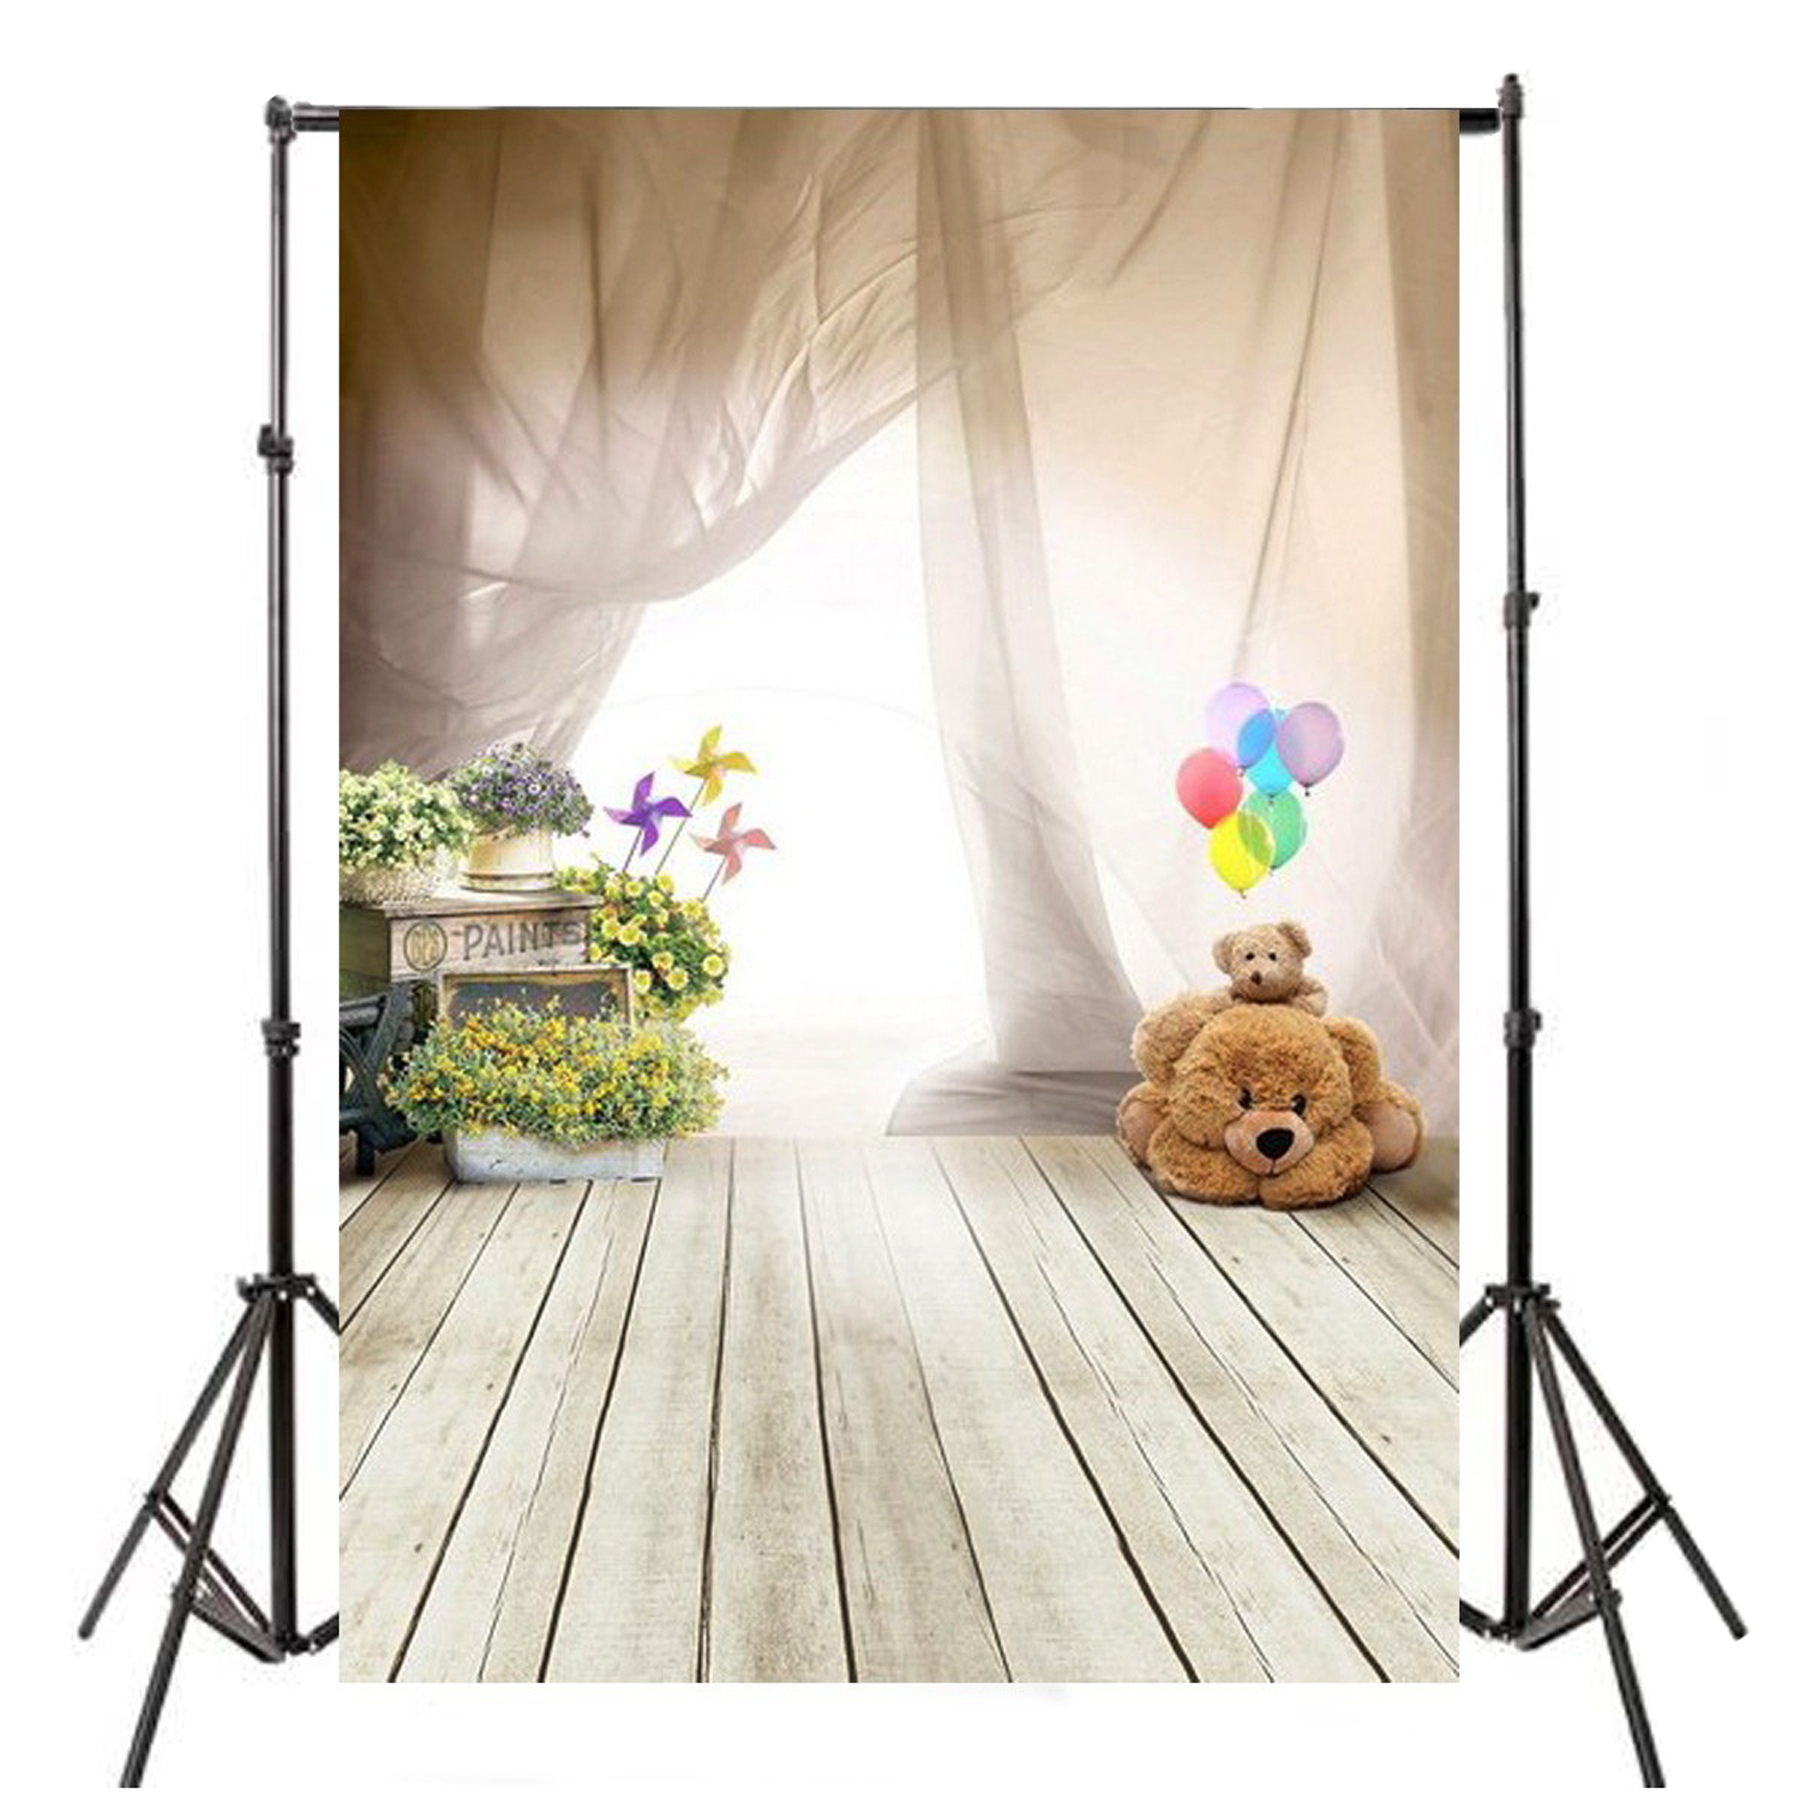 NK HOME Studio Photo Video Photography Backdrops 3x5ft Ballon Bear Room Printed Vinyl Fabric Background Screen Props